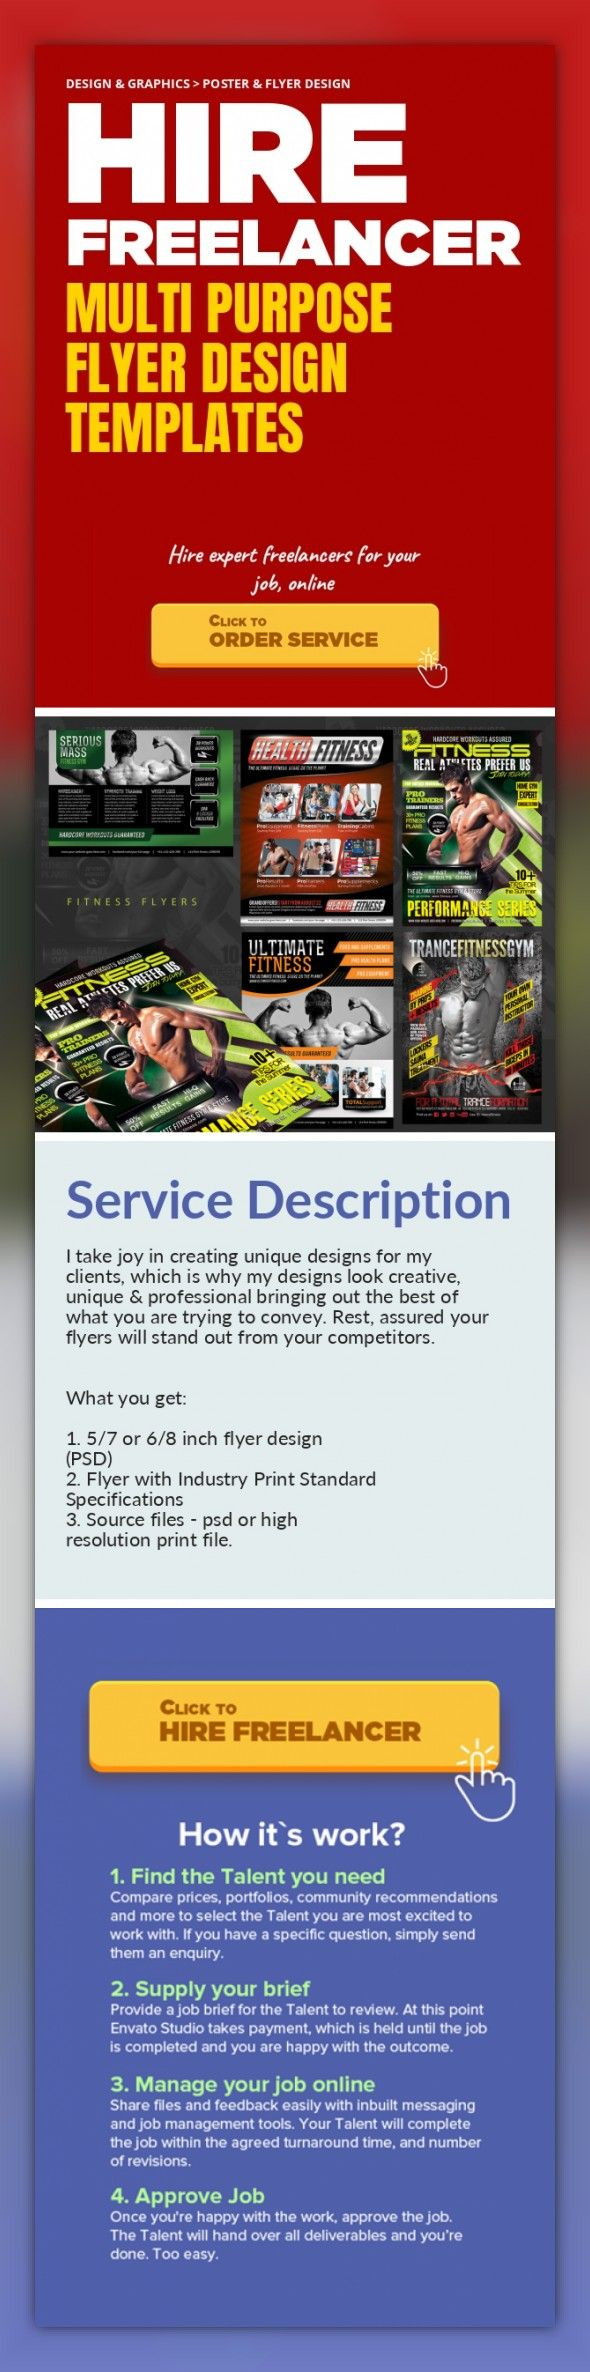 Multi Purpose Flyer Design Templates Design & Graphics, Poster & Flyer Design   I take joy in creating unique designs for my clients, which is why my designs look creative, unique & professional bringing out the best of what you are trying to convey. Rest, assured your flyers will stand out from your competitors.     What you get:    1. 5/7 or 6/8 inch flyer design (PSD)  2. Flyer with Industr...